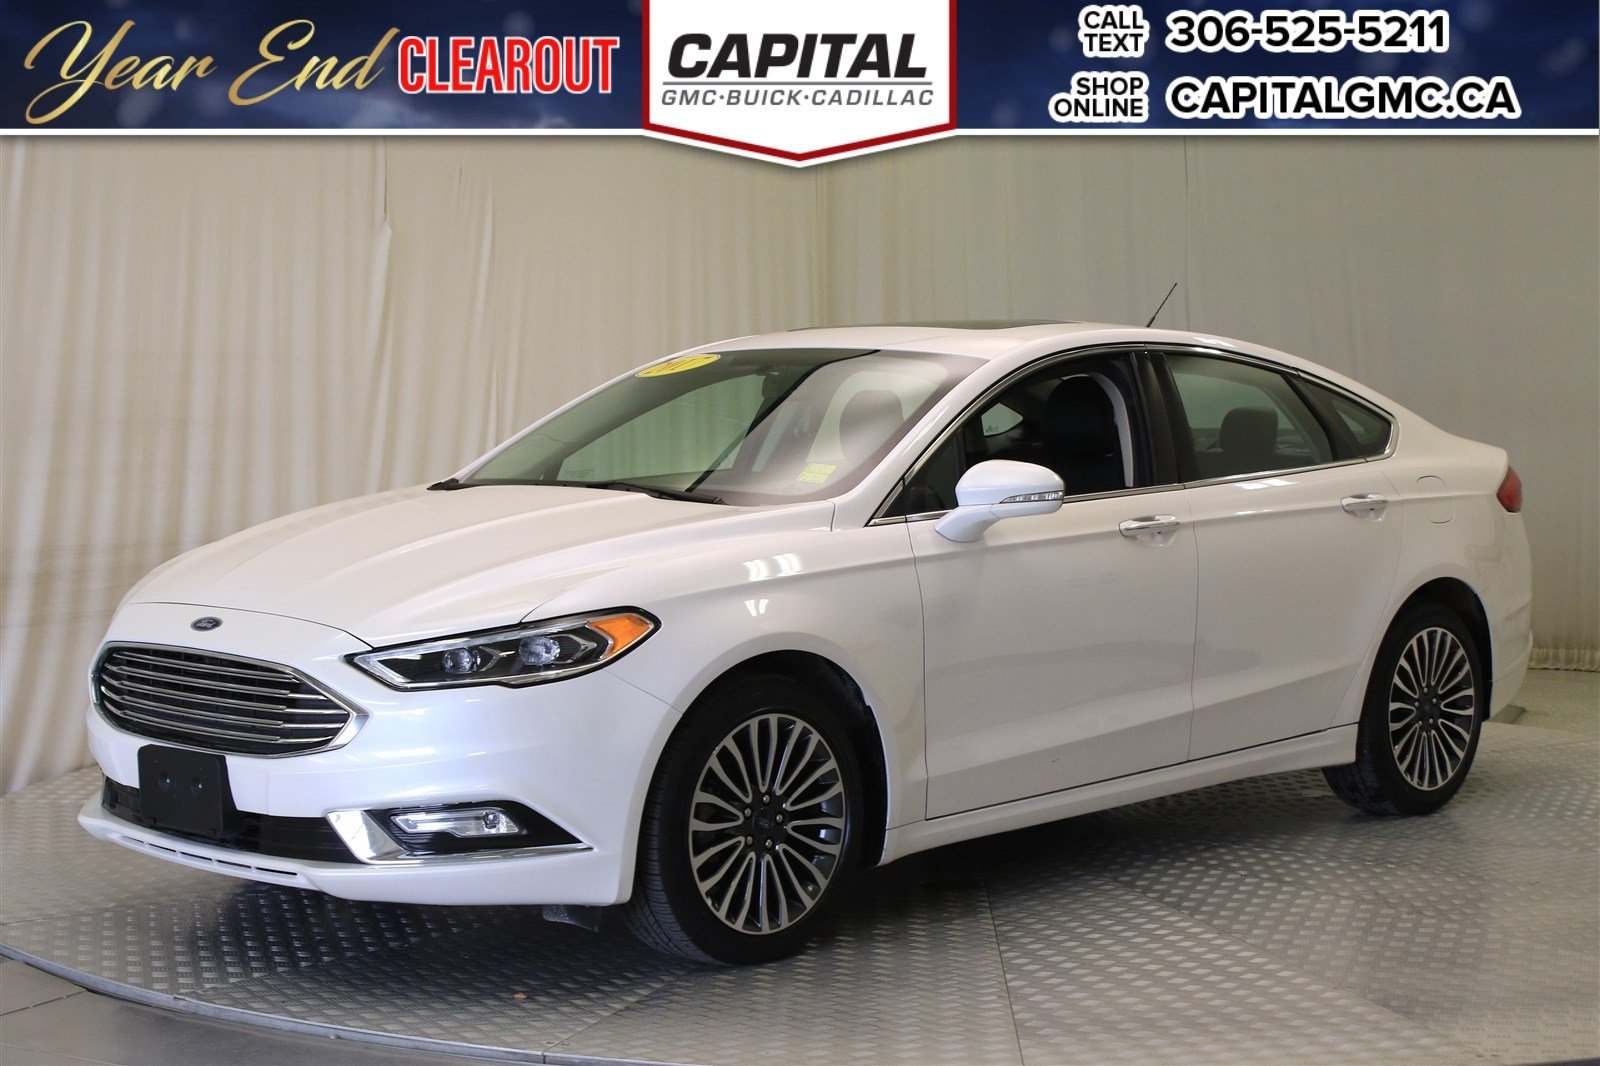 Certified pre owned 2017 ford fusion se awdnavsunroofleather